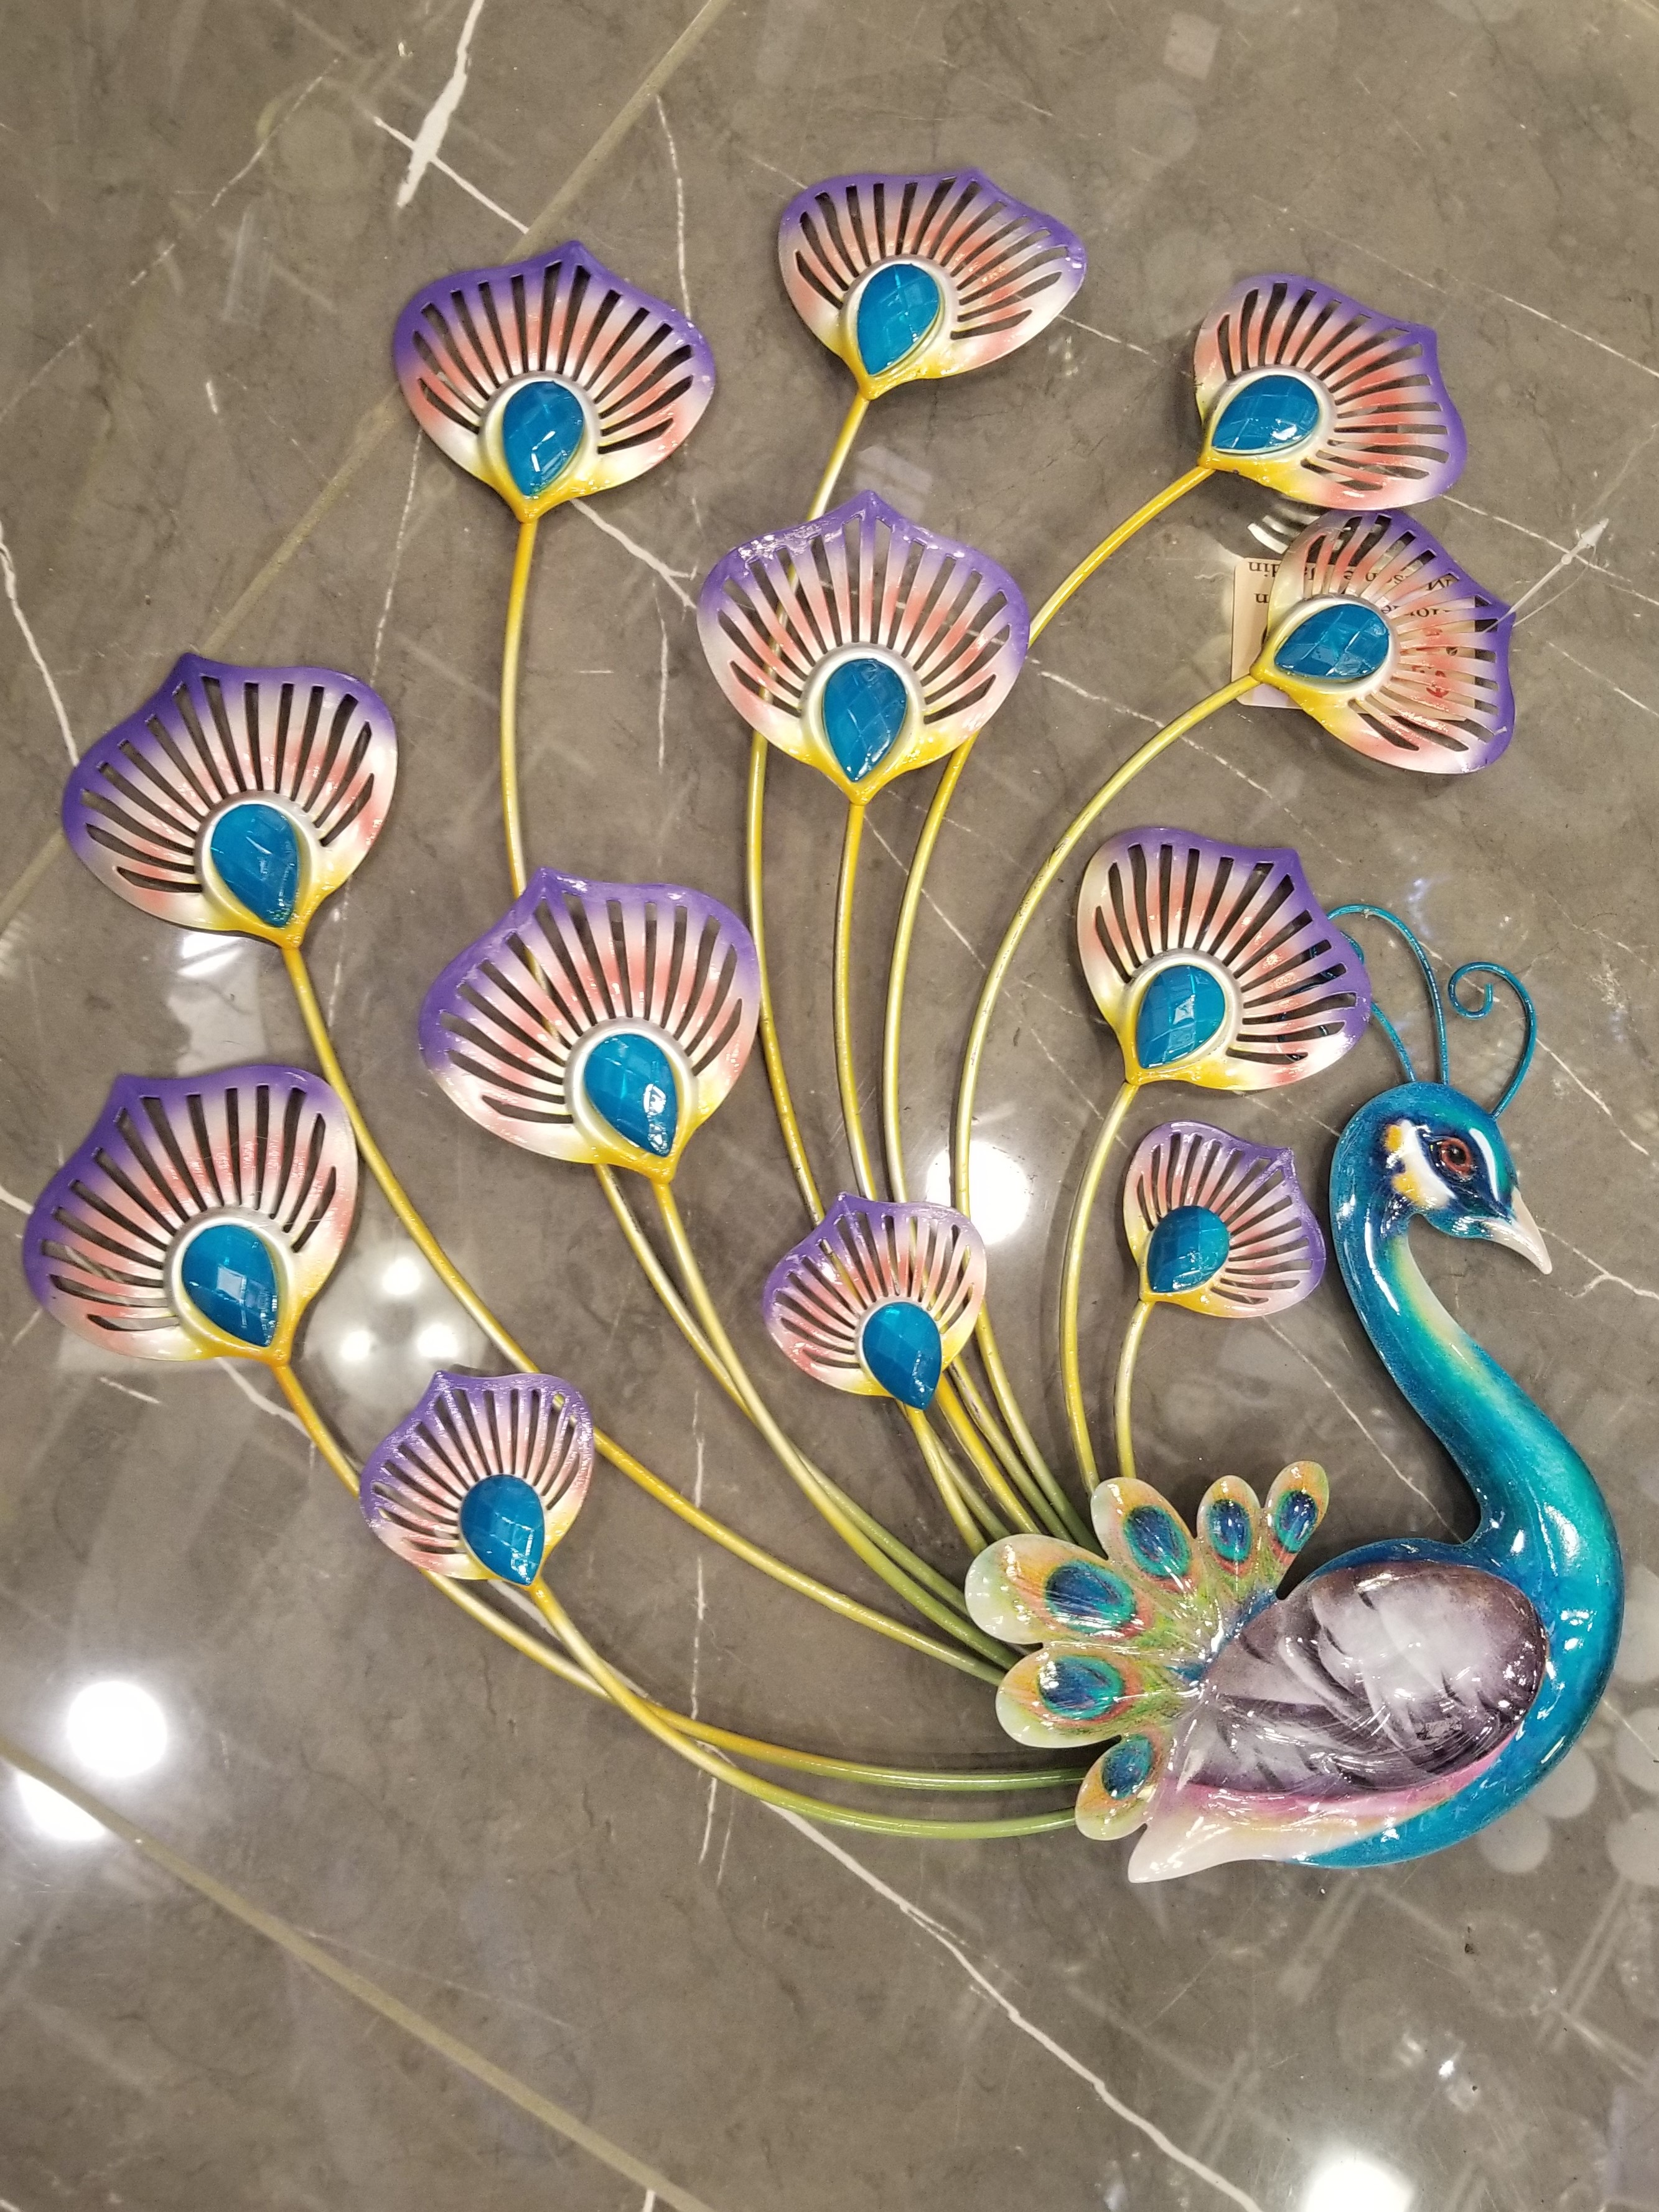 508 ALH104 Peacock Wallart Reg. Price $44.99 Blowout Price $31.99